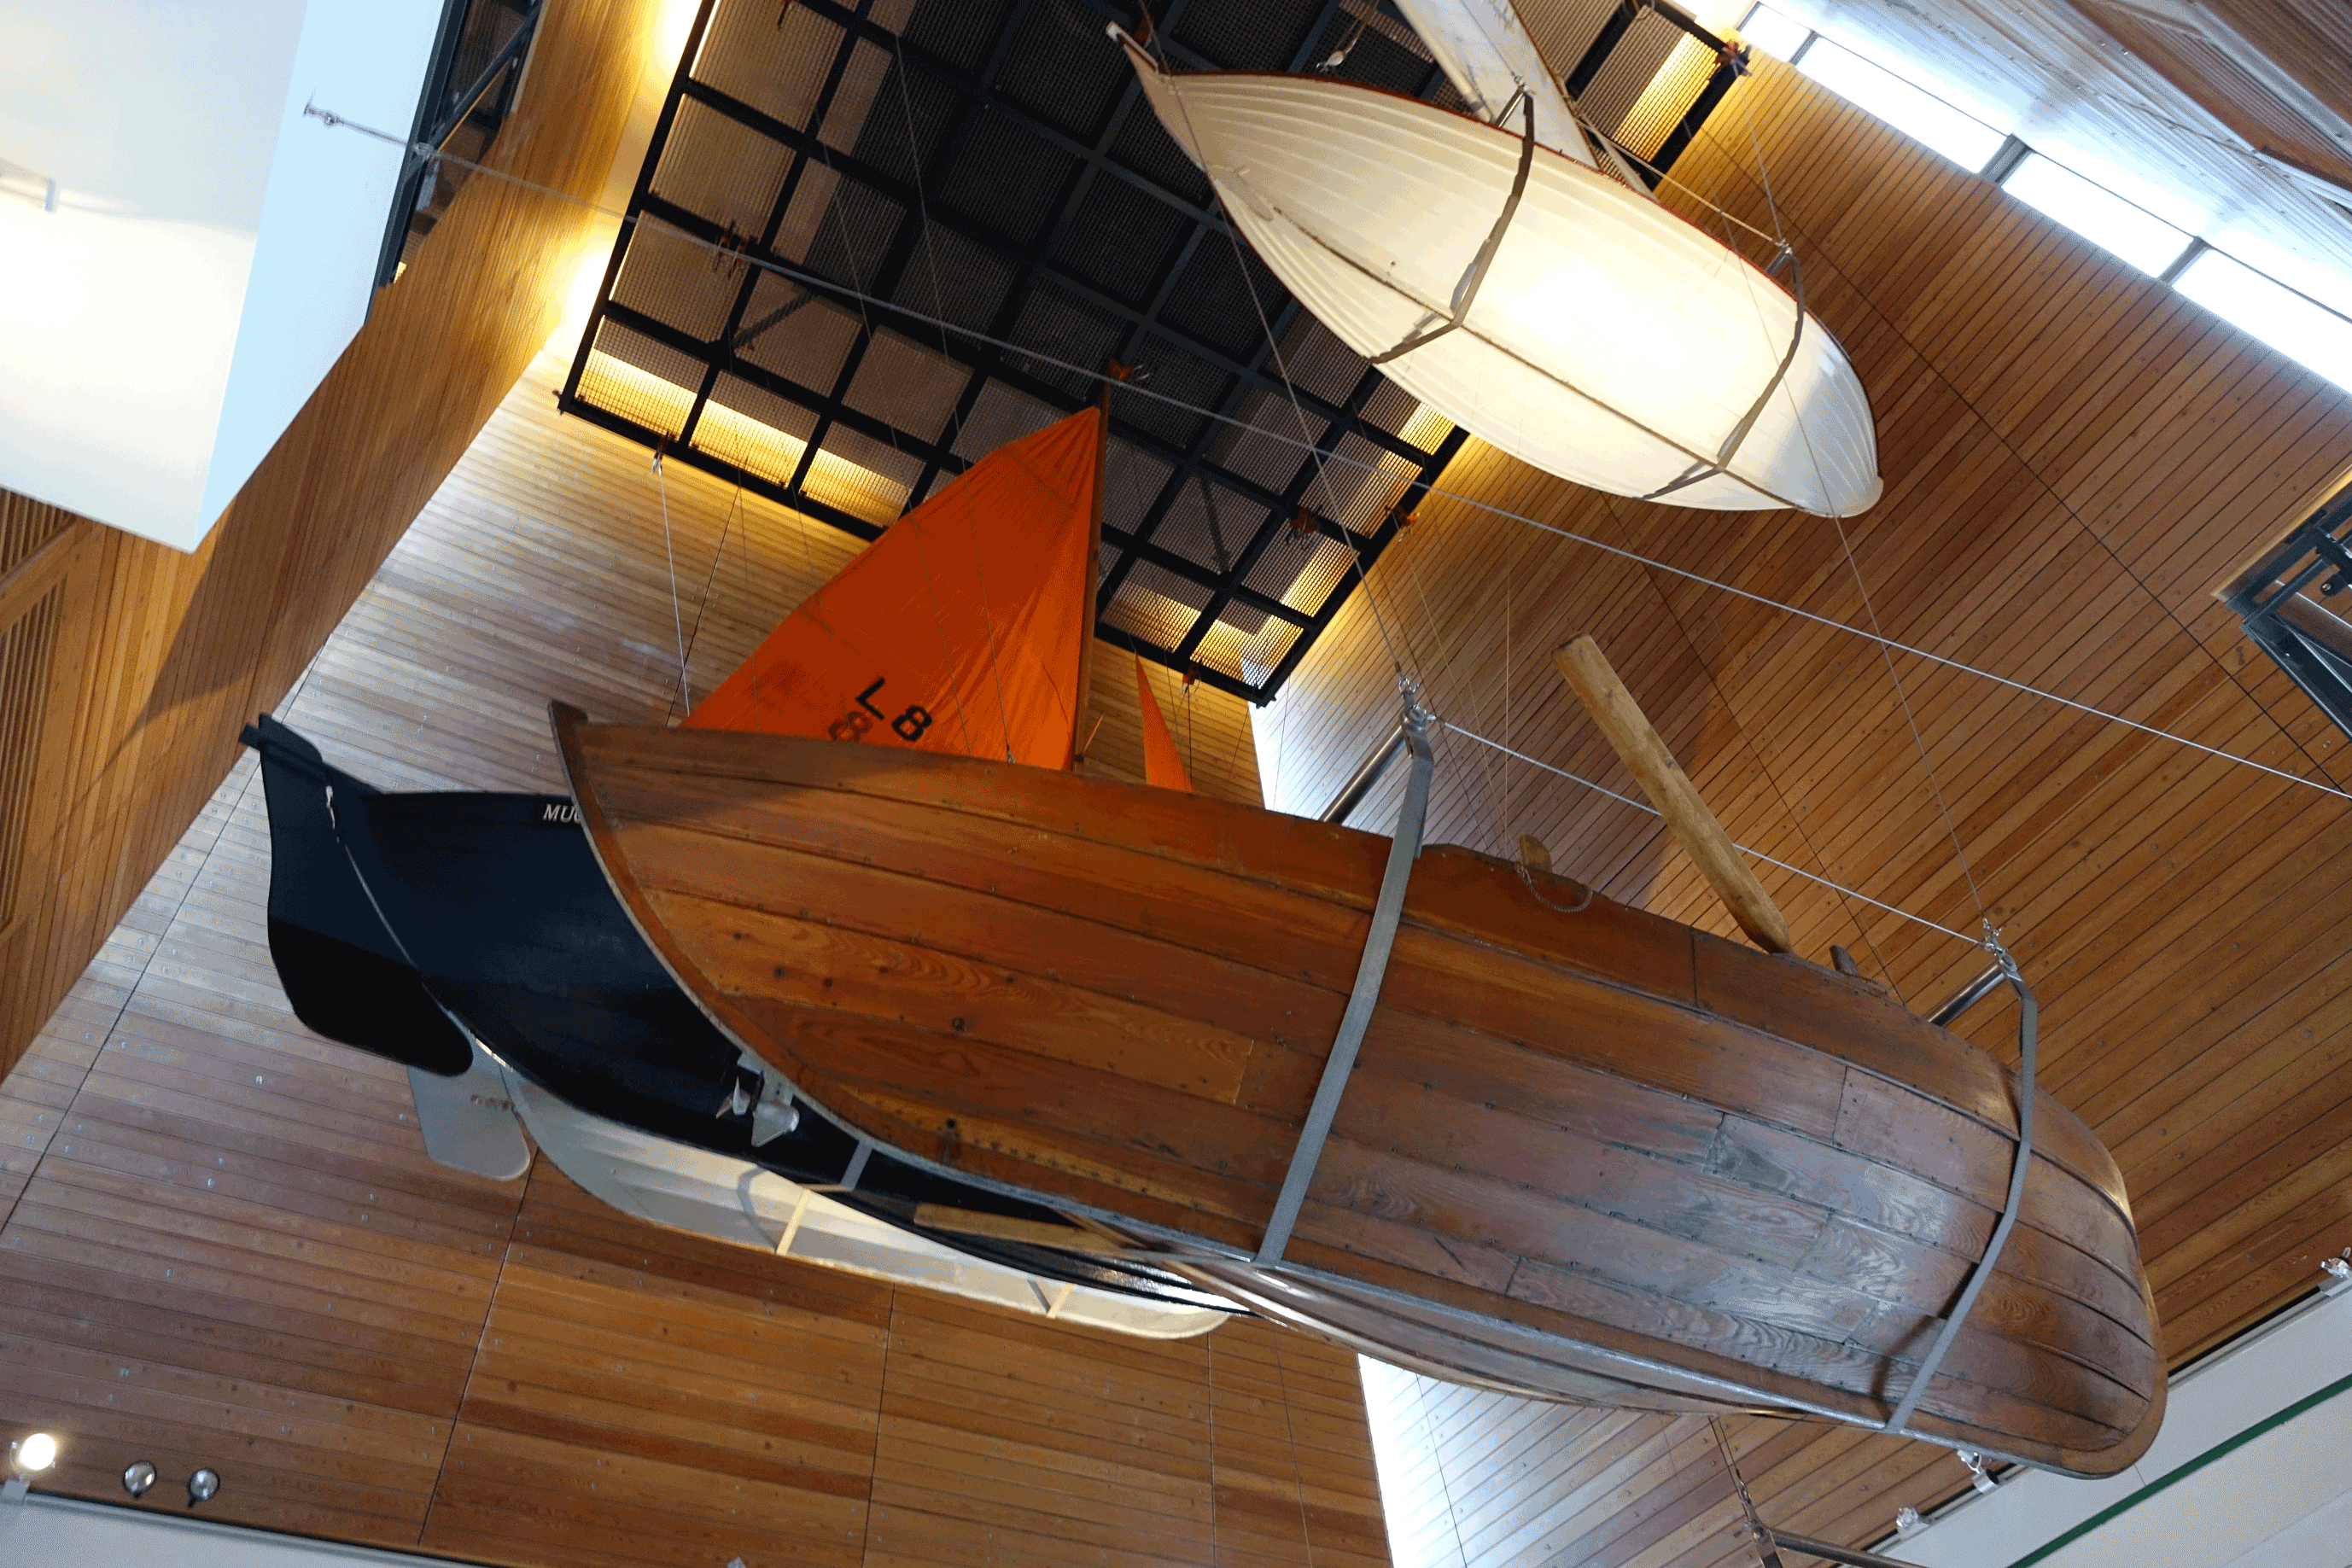 boats-at-the-museum